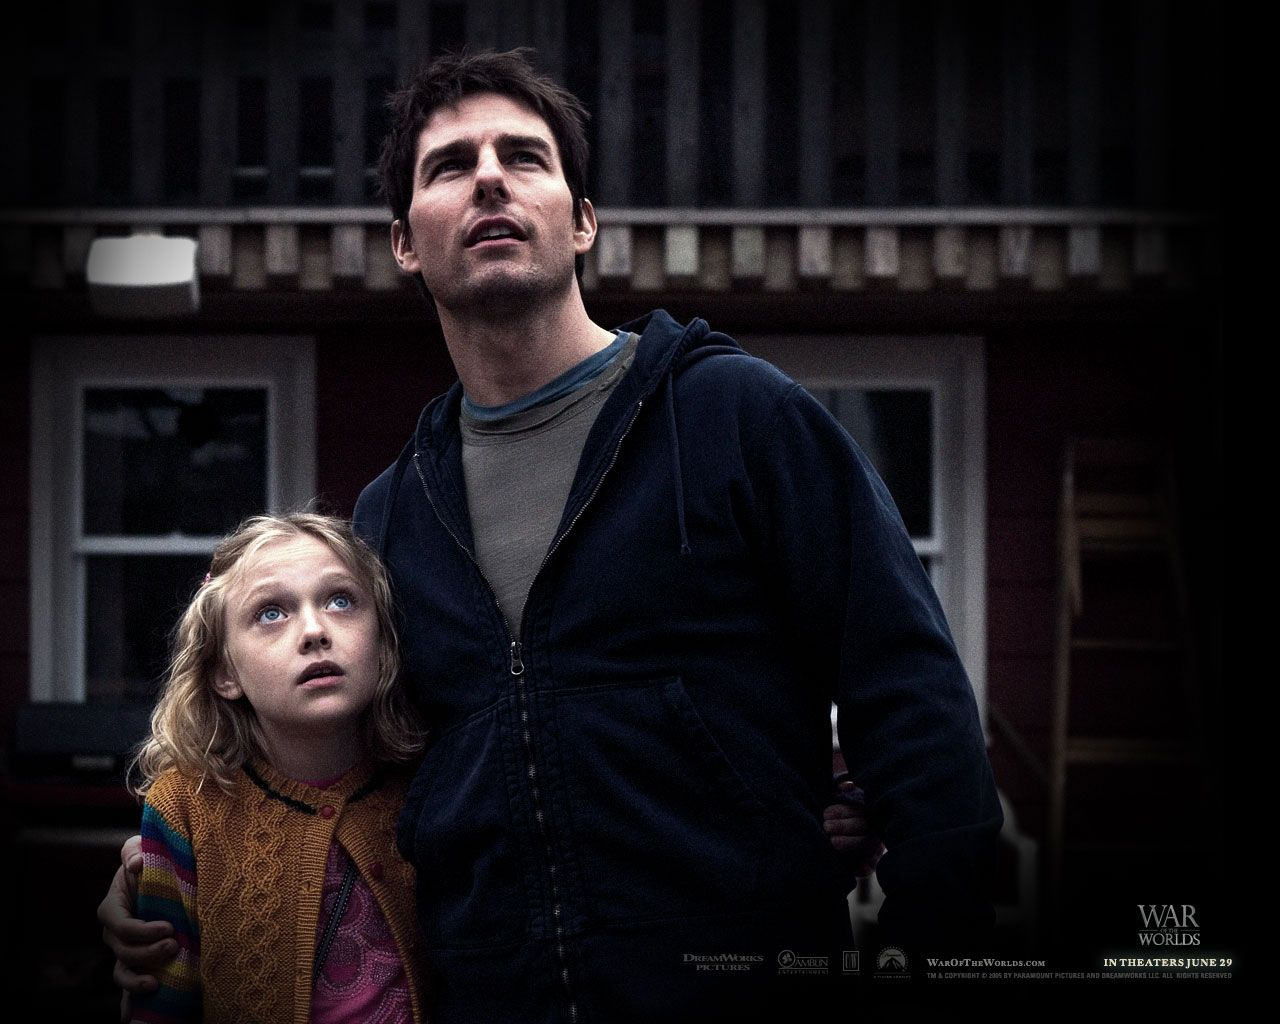 Tom Cruise War of the Worlds a summer blockbuster regardless of 1280x1024